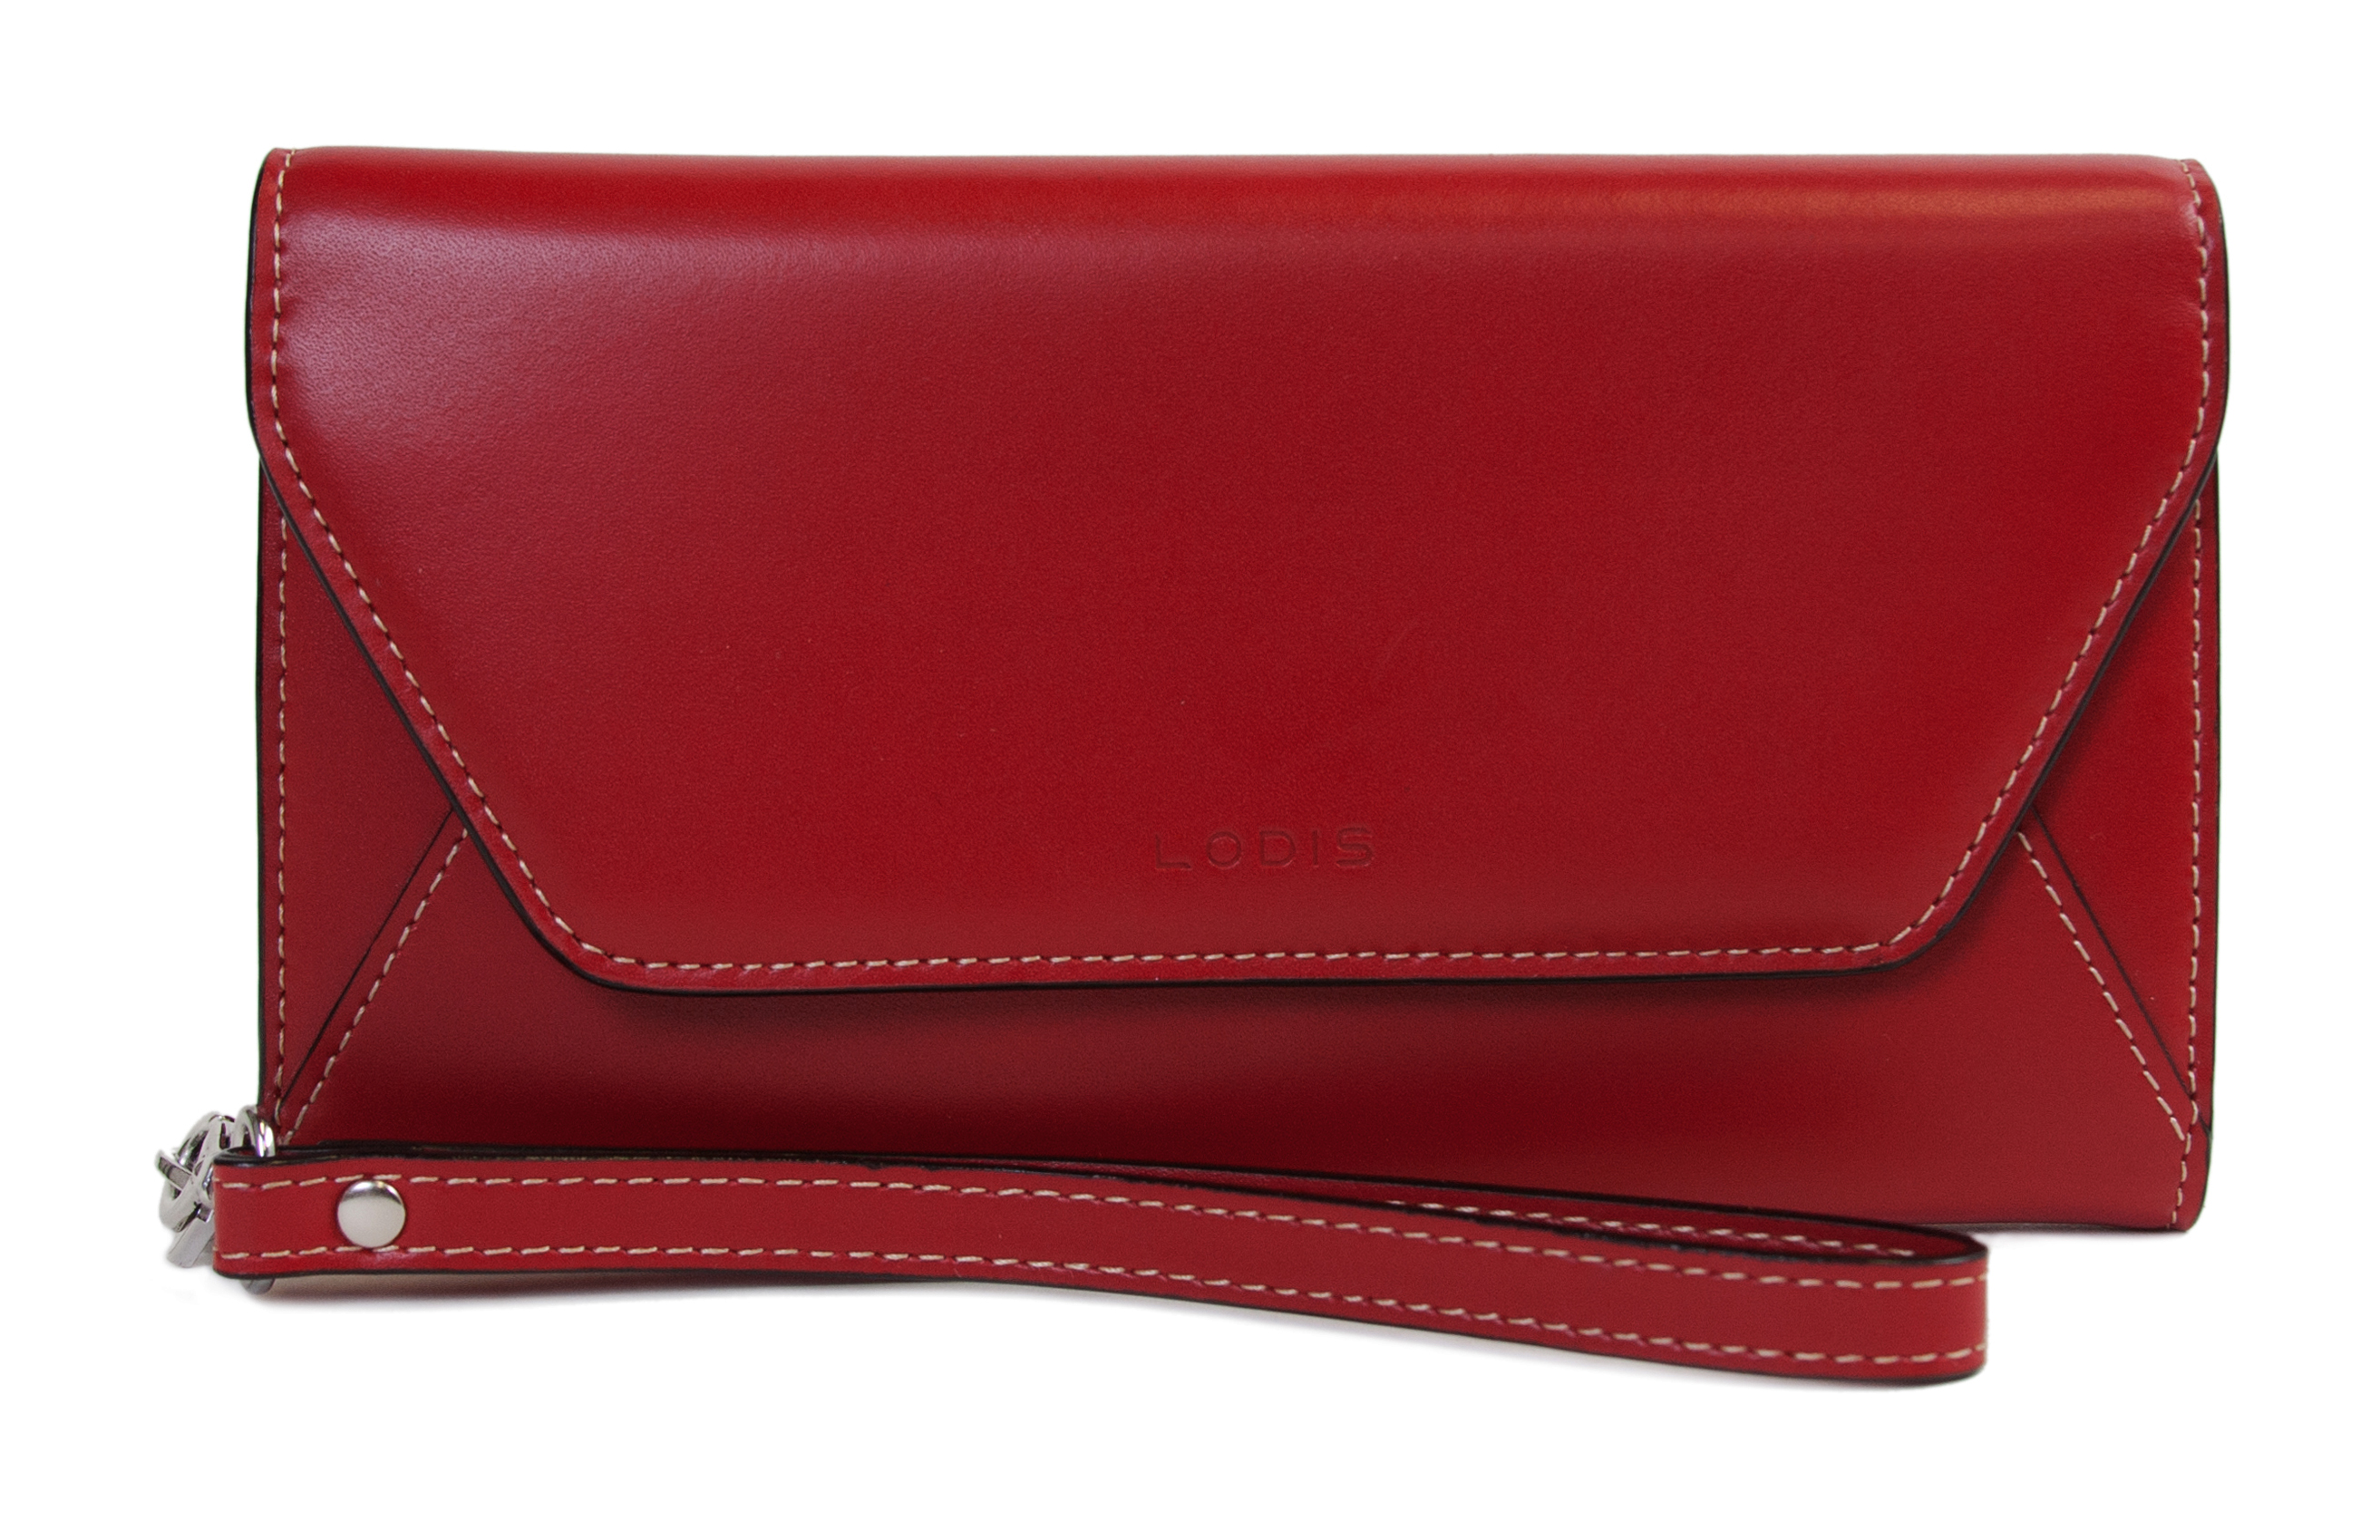 Lodis AUDREY TIFF PHONE WALLET Red